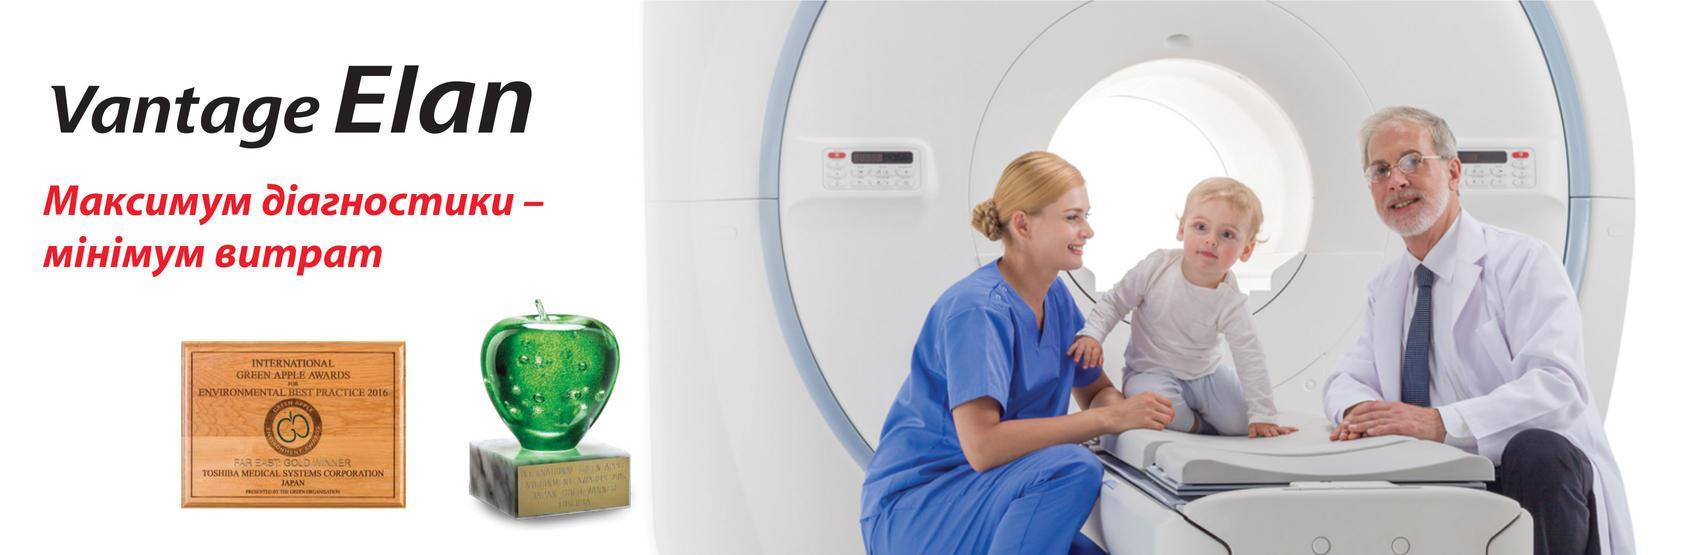 /ua/products/mri/vantage-elan-15t/